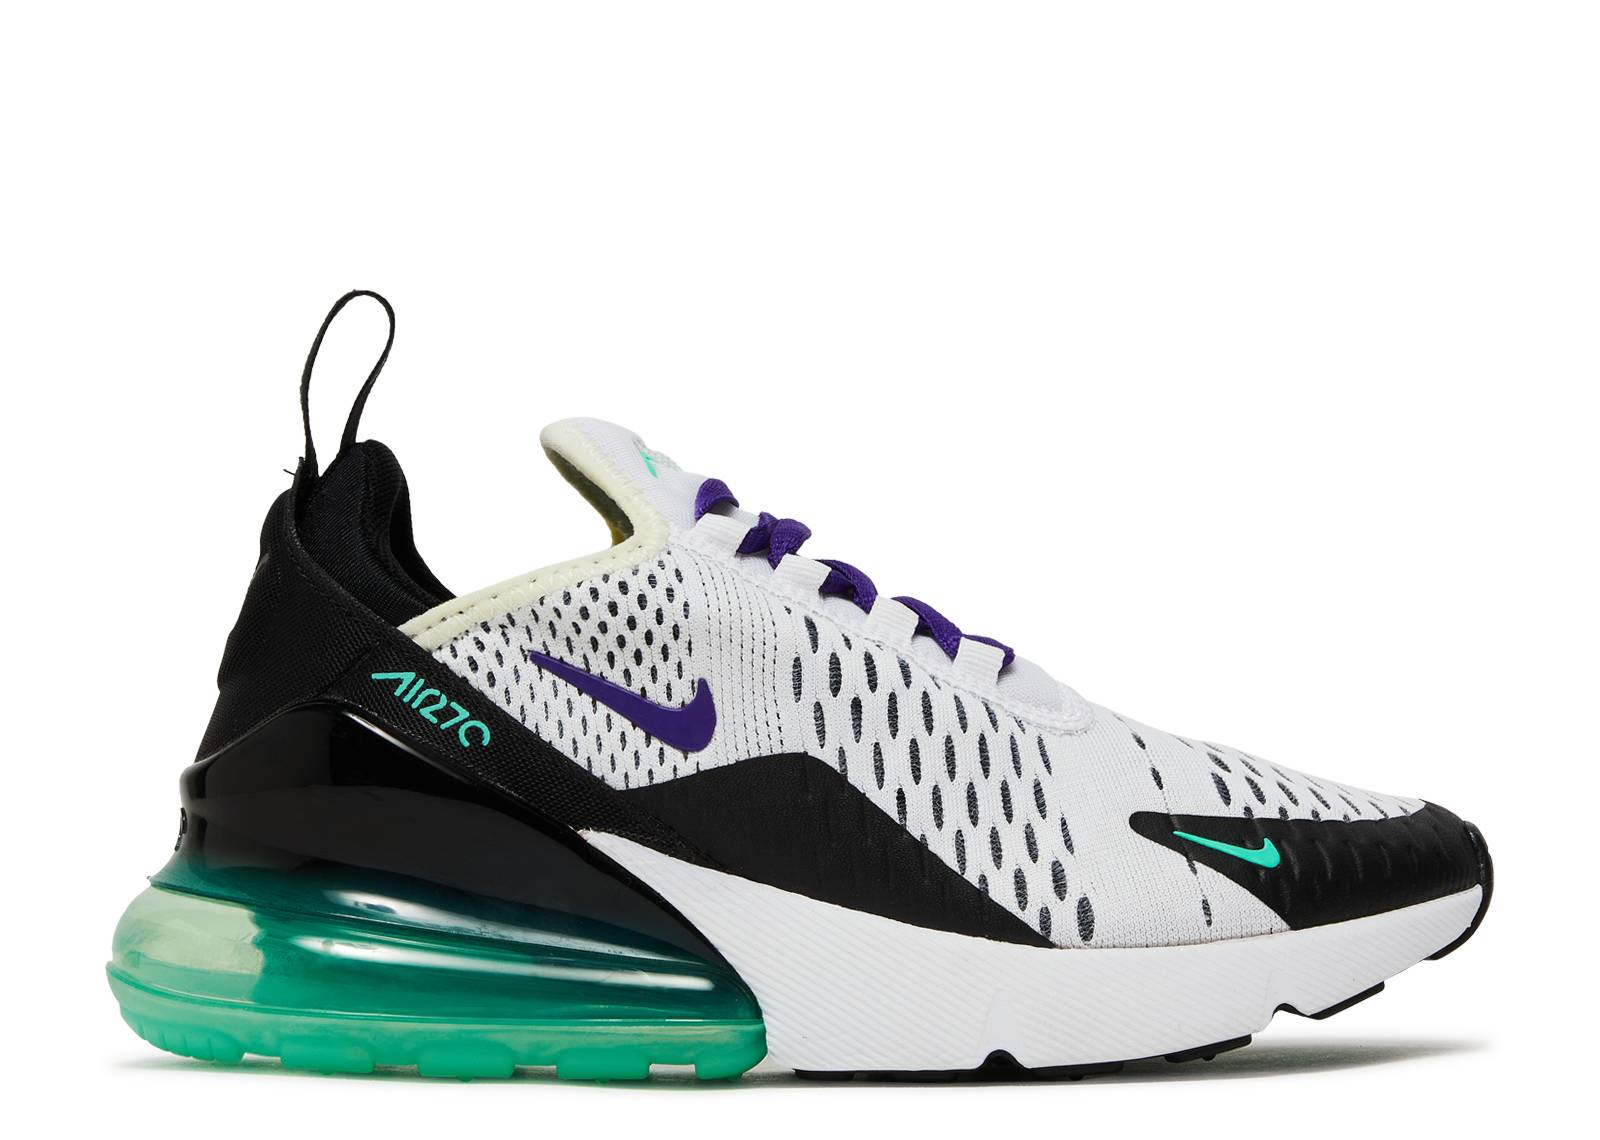 low priced 156a7 88881 nike. W AIR MAX 270